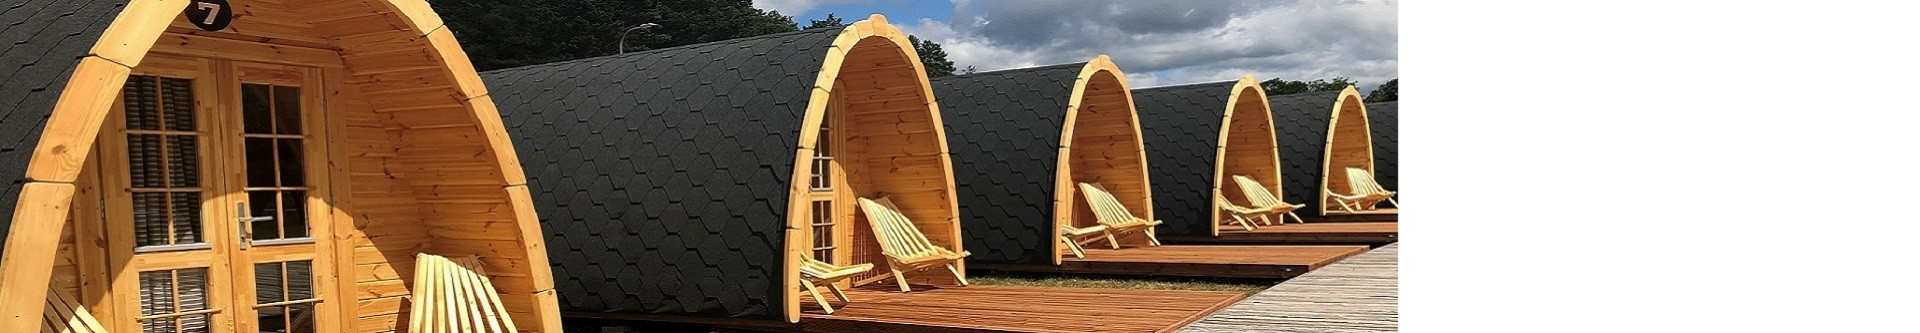 Campings Pods